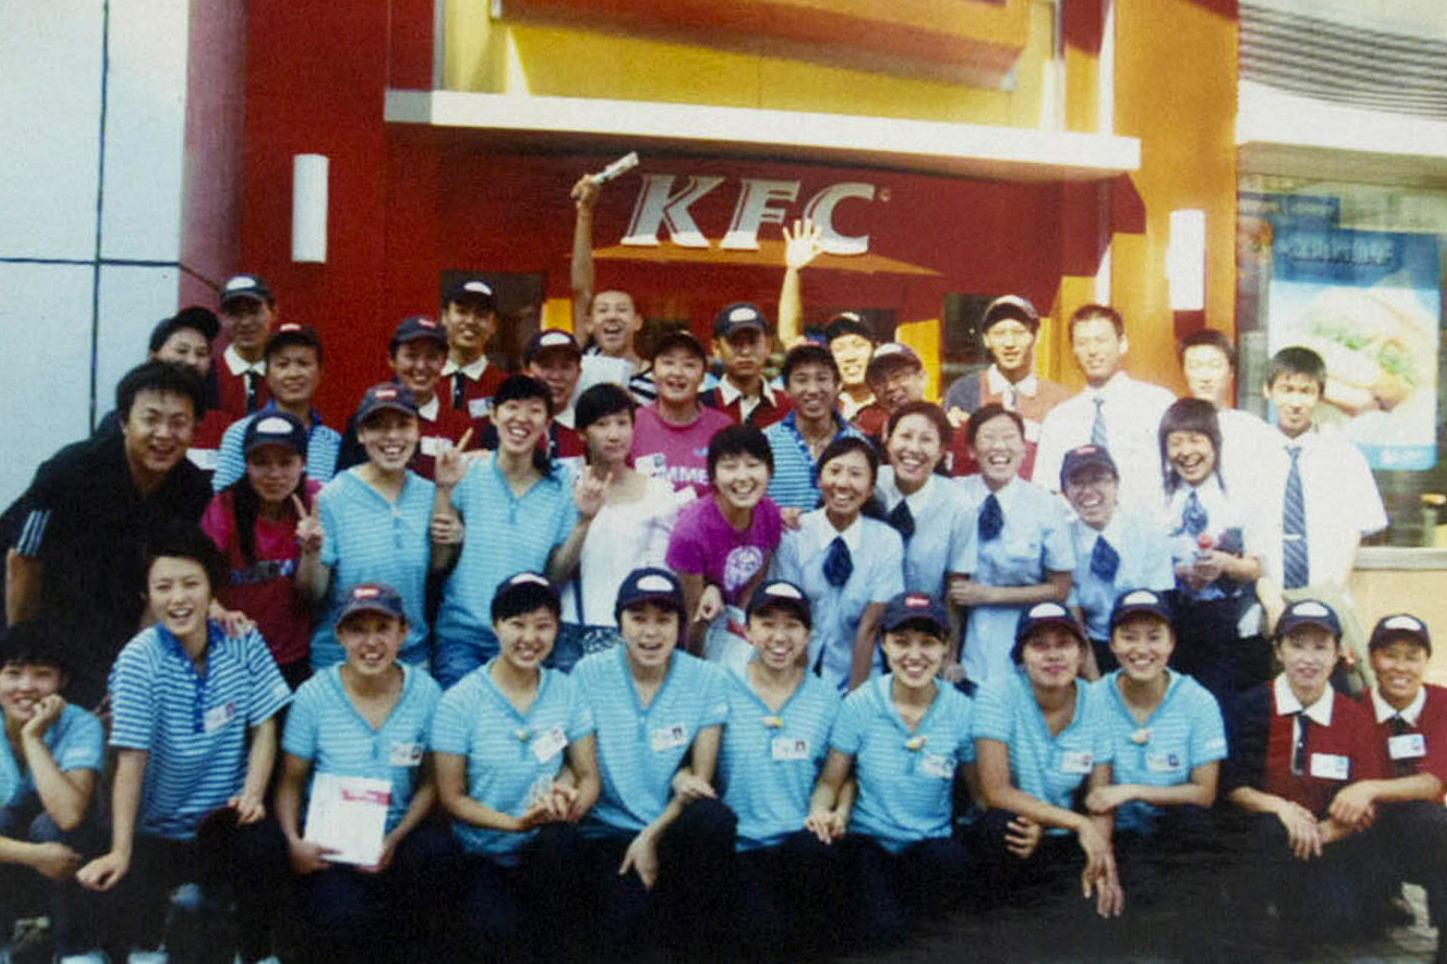 Ru Dongying (second row, fourth from left) and Yang Kun (back row, third from left) pose with colleagues in a photo taken in 2009. Following graduation Ru continued working part-time at KFC to supplement her low starting salary at a state-owned mining company. Provided by Ru Dongying